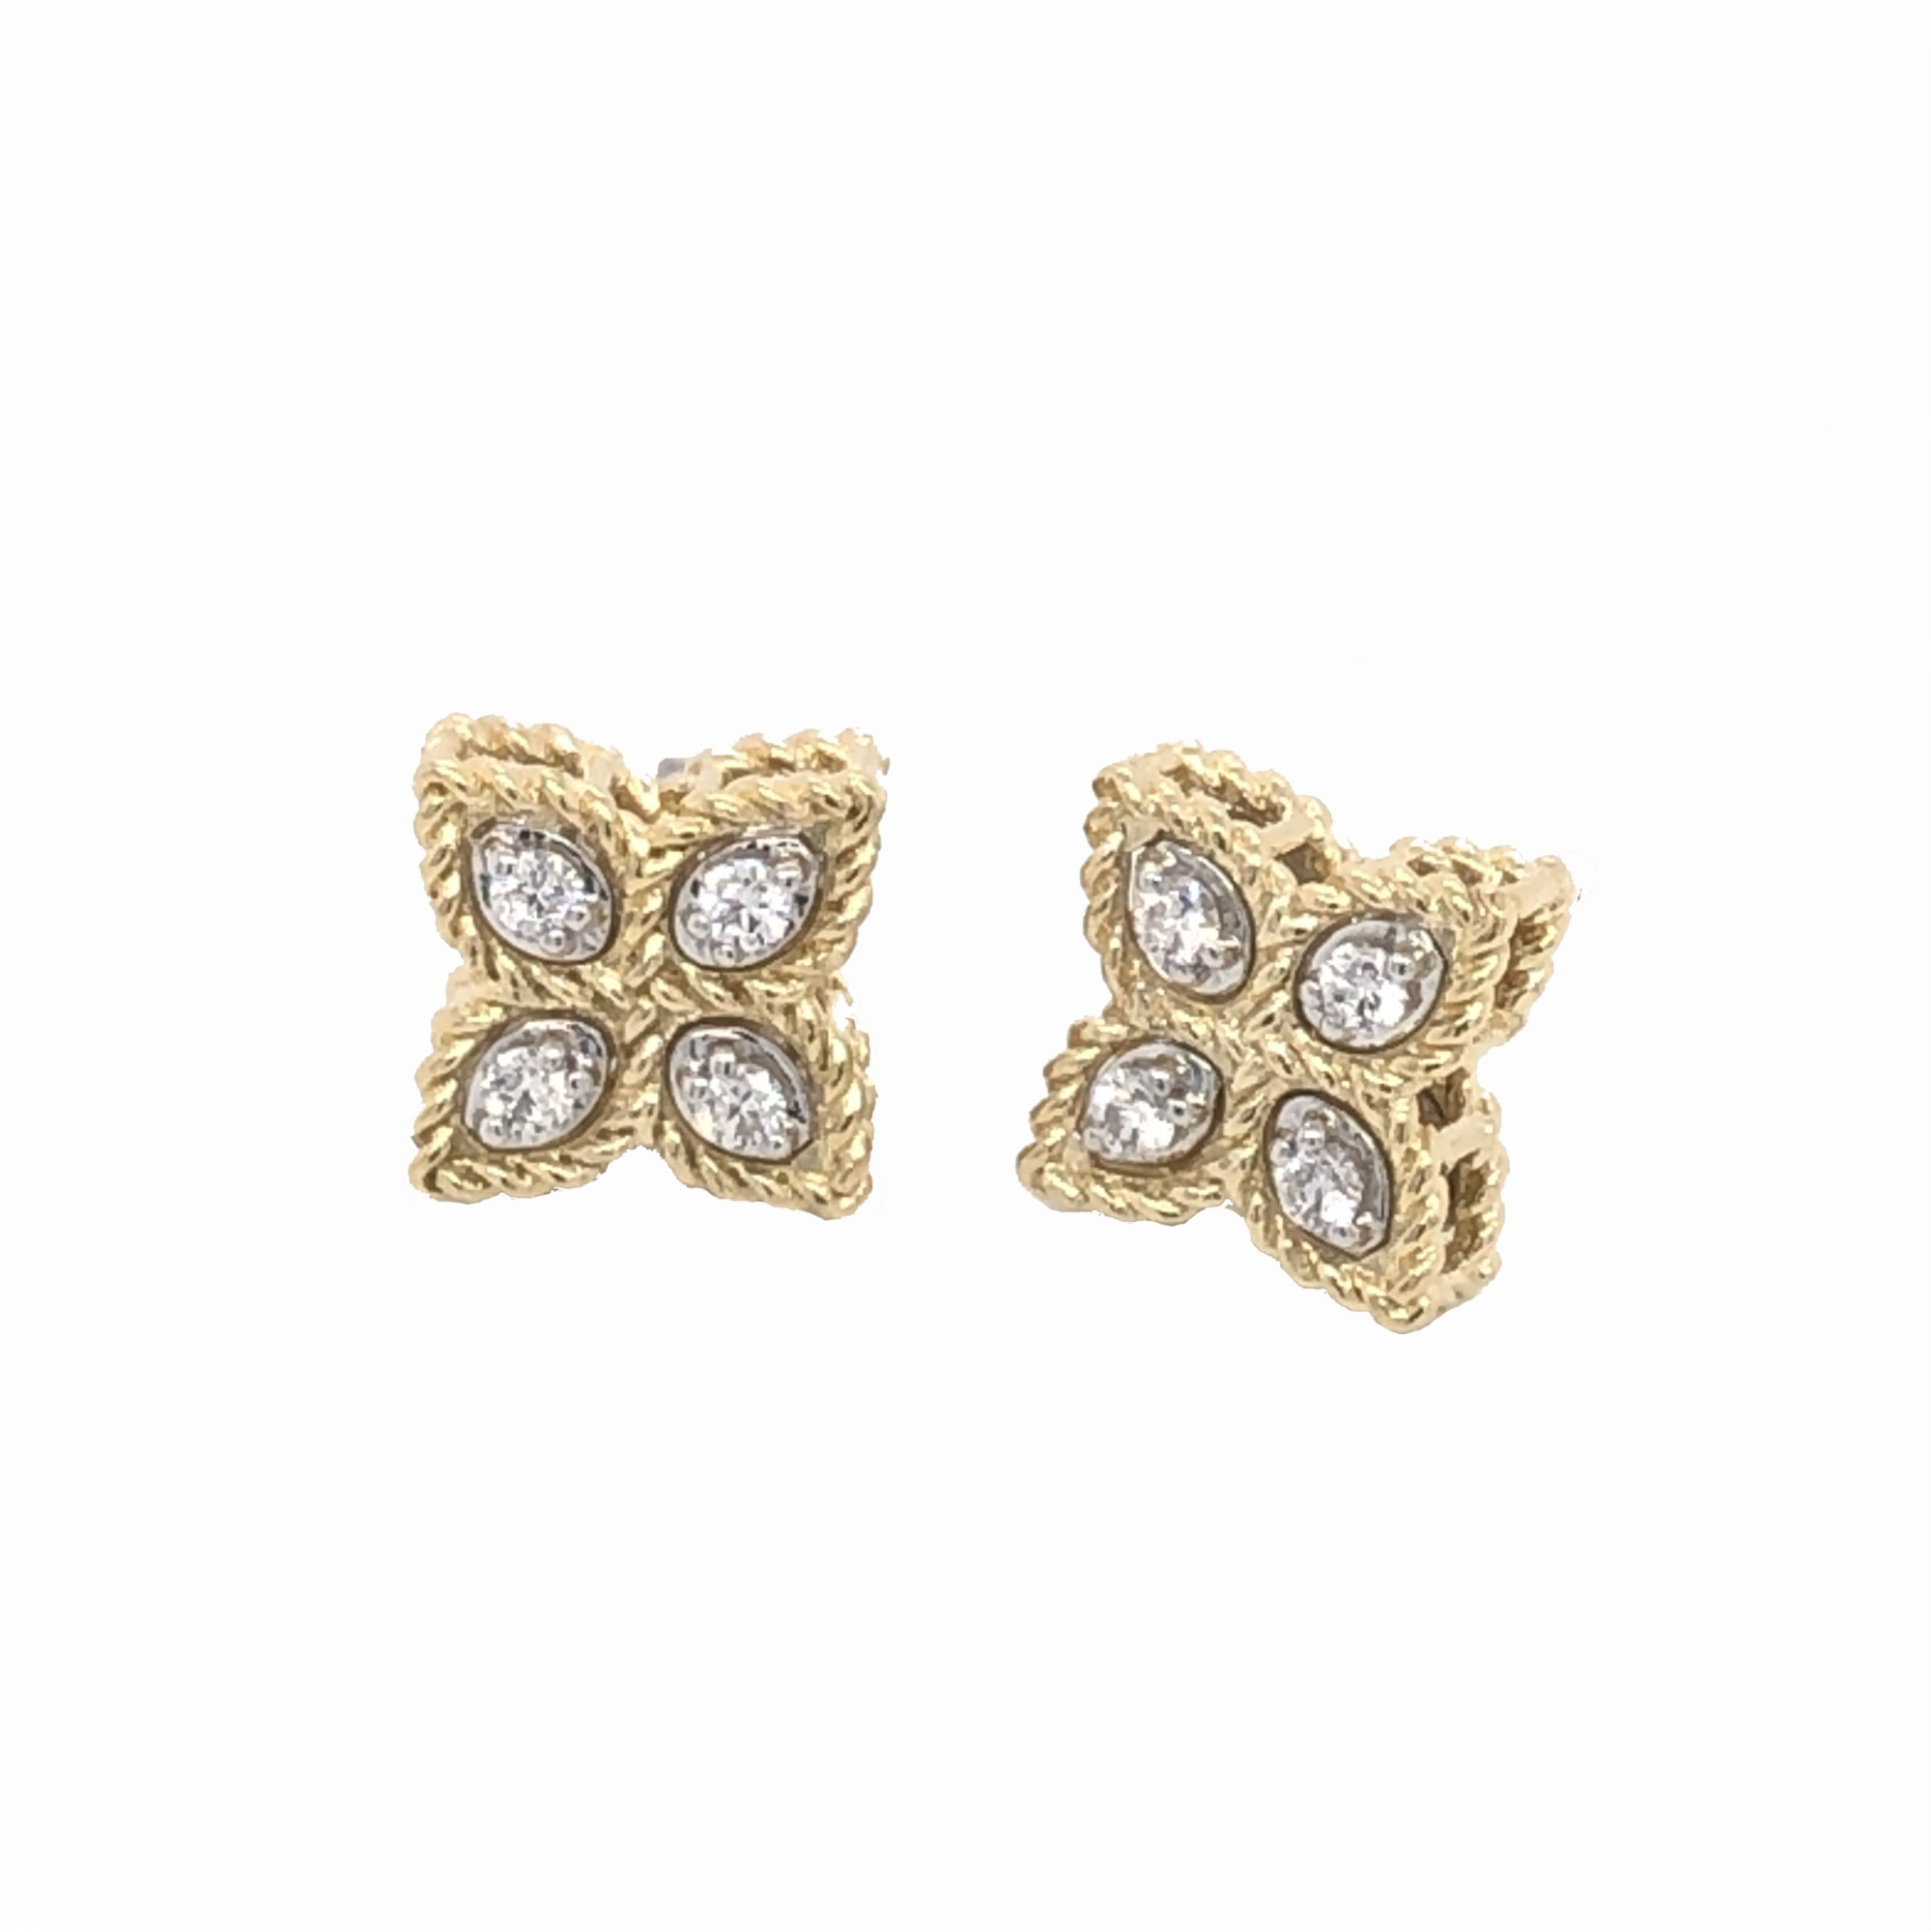 Roberto Coin 18K Yellow Gold .10cts  Diamond Gold Earrings with Stones 7771383AJERX